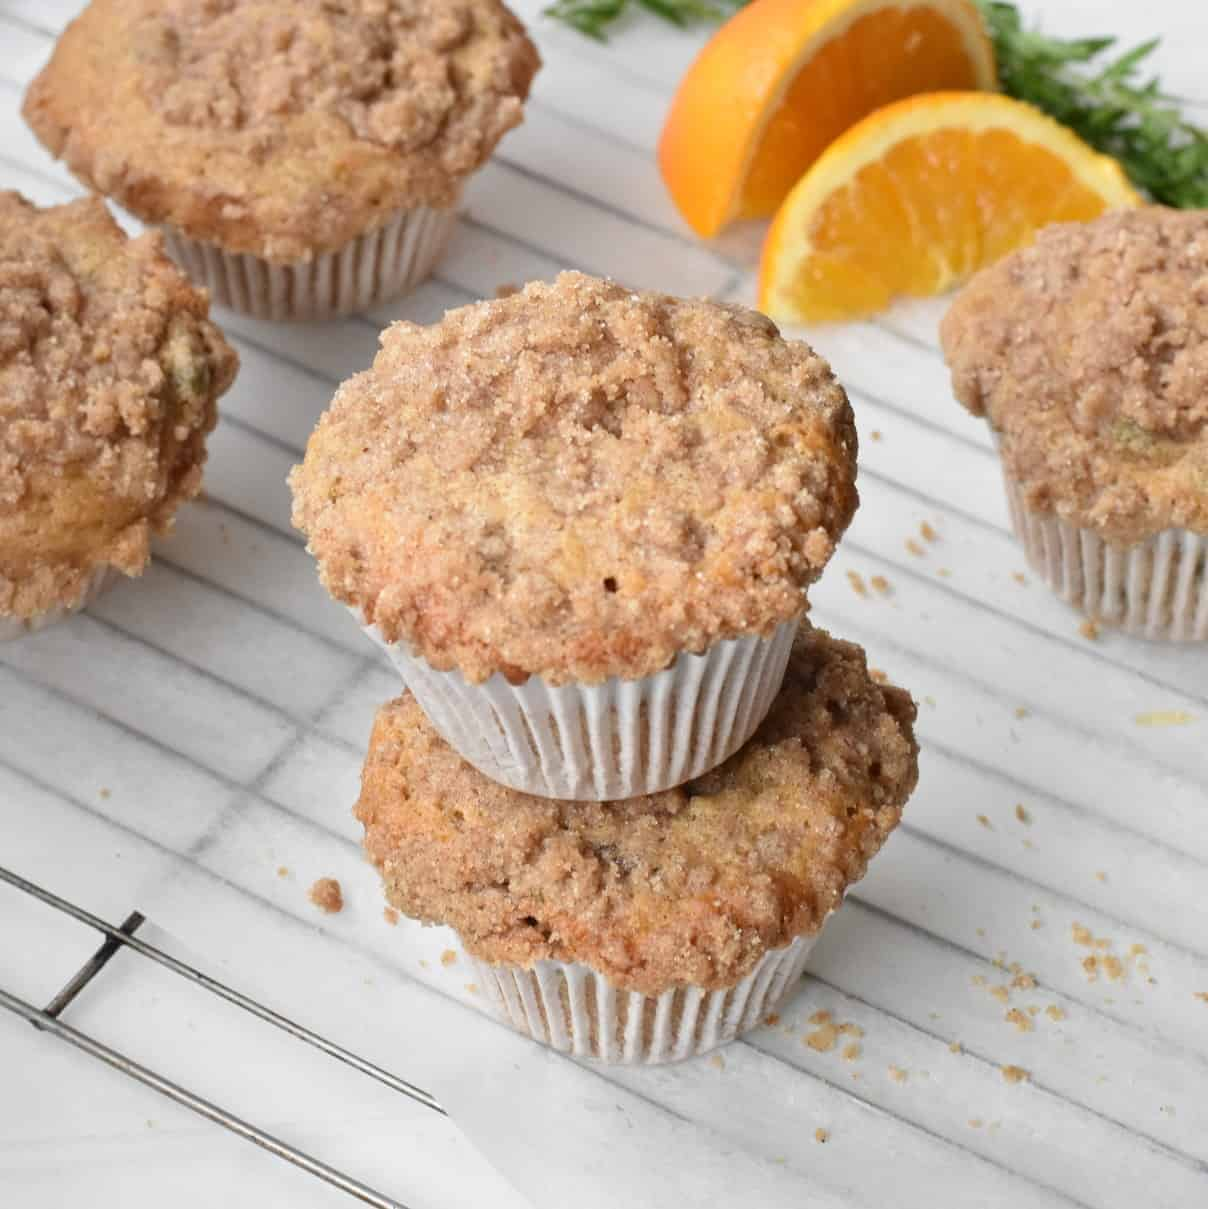 Breakfast Muffins with Cinnamon Streusel on wire rack.